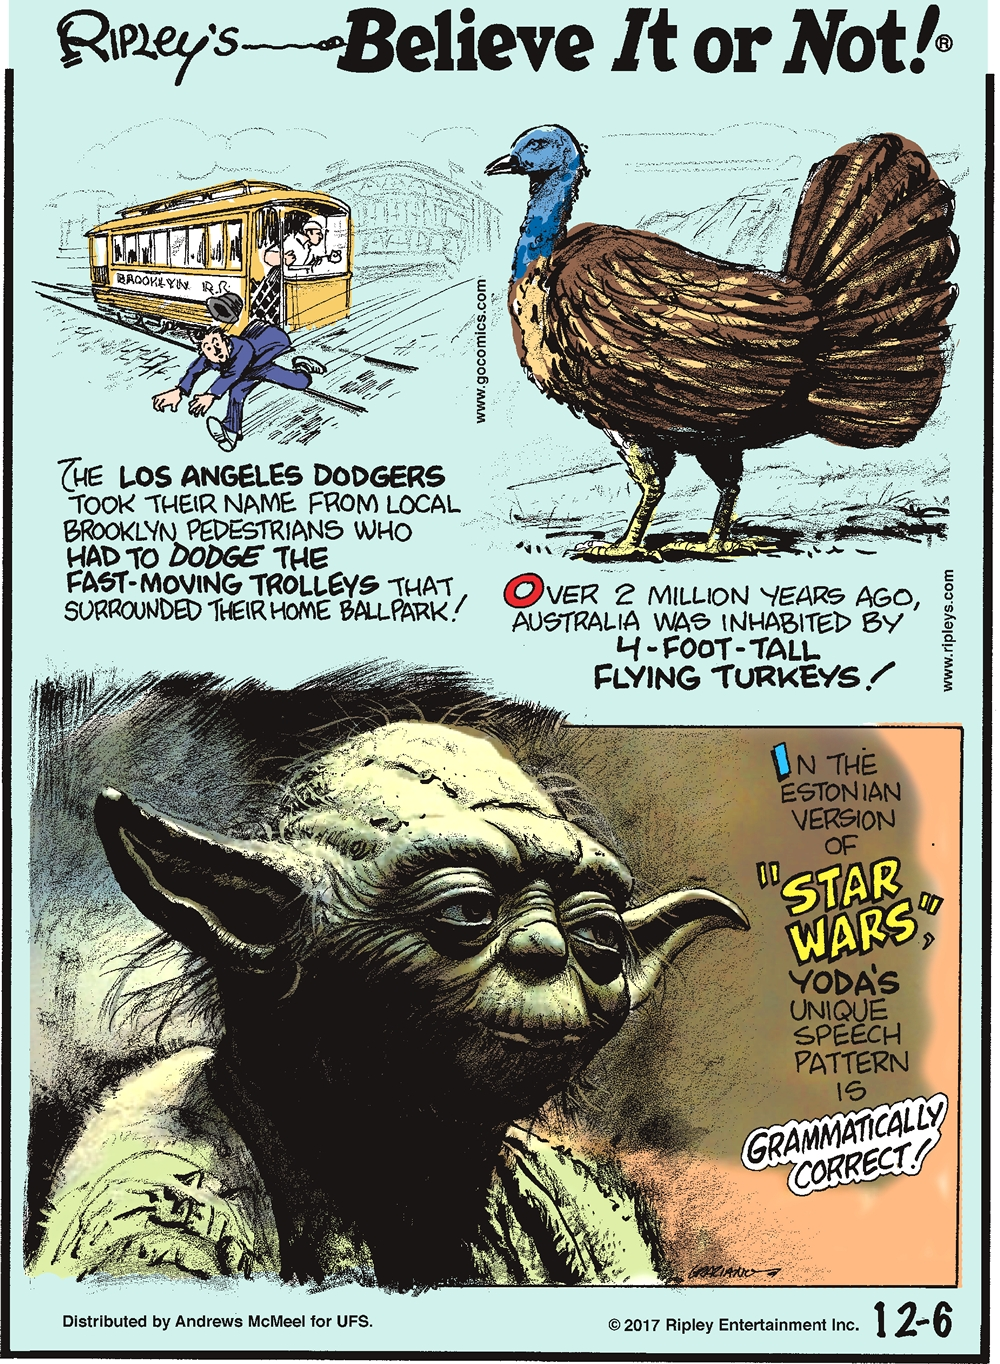 """The Los Angeles Dodgers took their name from local Brooklyn pedestrians who had to dodge the fast-moving trolleys that surrounded their home ballpark!-------------------- Over 2 million years ago, Australia was inhabited by 4-foot-tall flying turkeys!-------------------- In the Estonian version of """"Star Wars,"""" Yoda's unique speech pattern is grammatically correct!"""